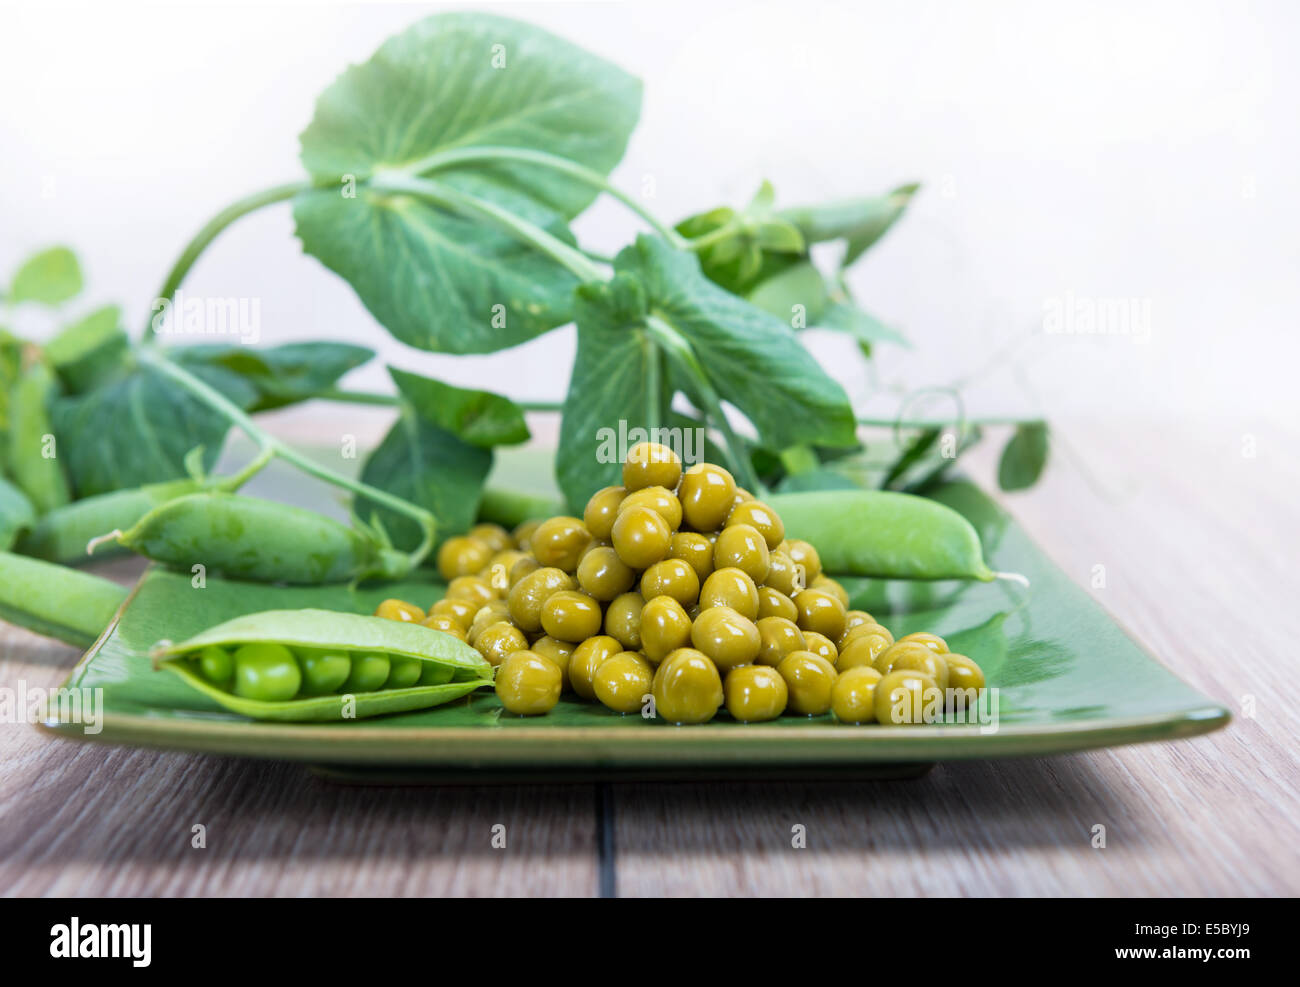 Boiled green peas on a platter, pods and branches - Stock Image